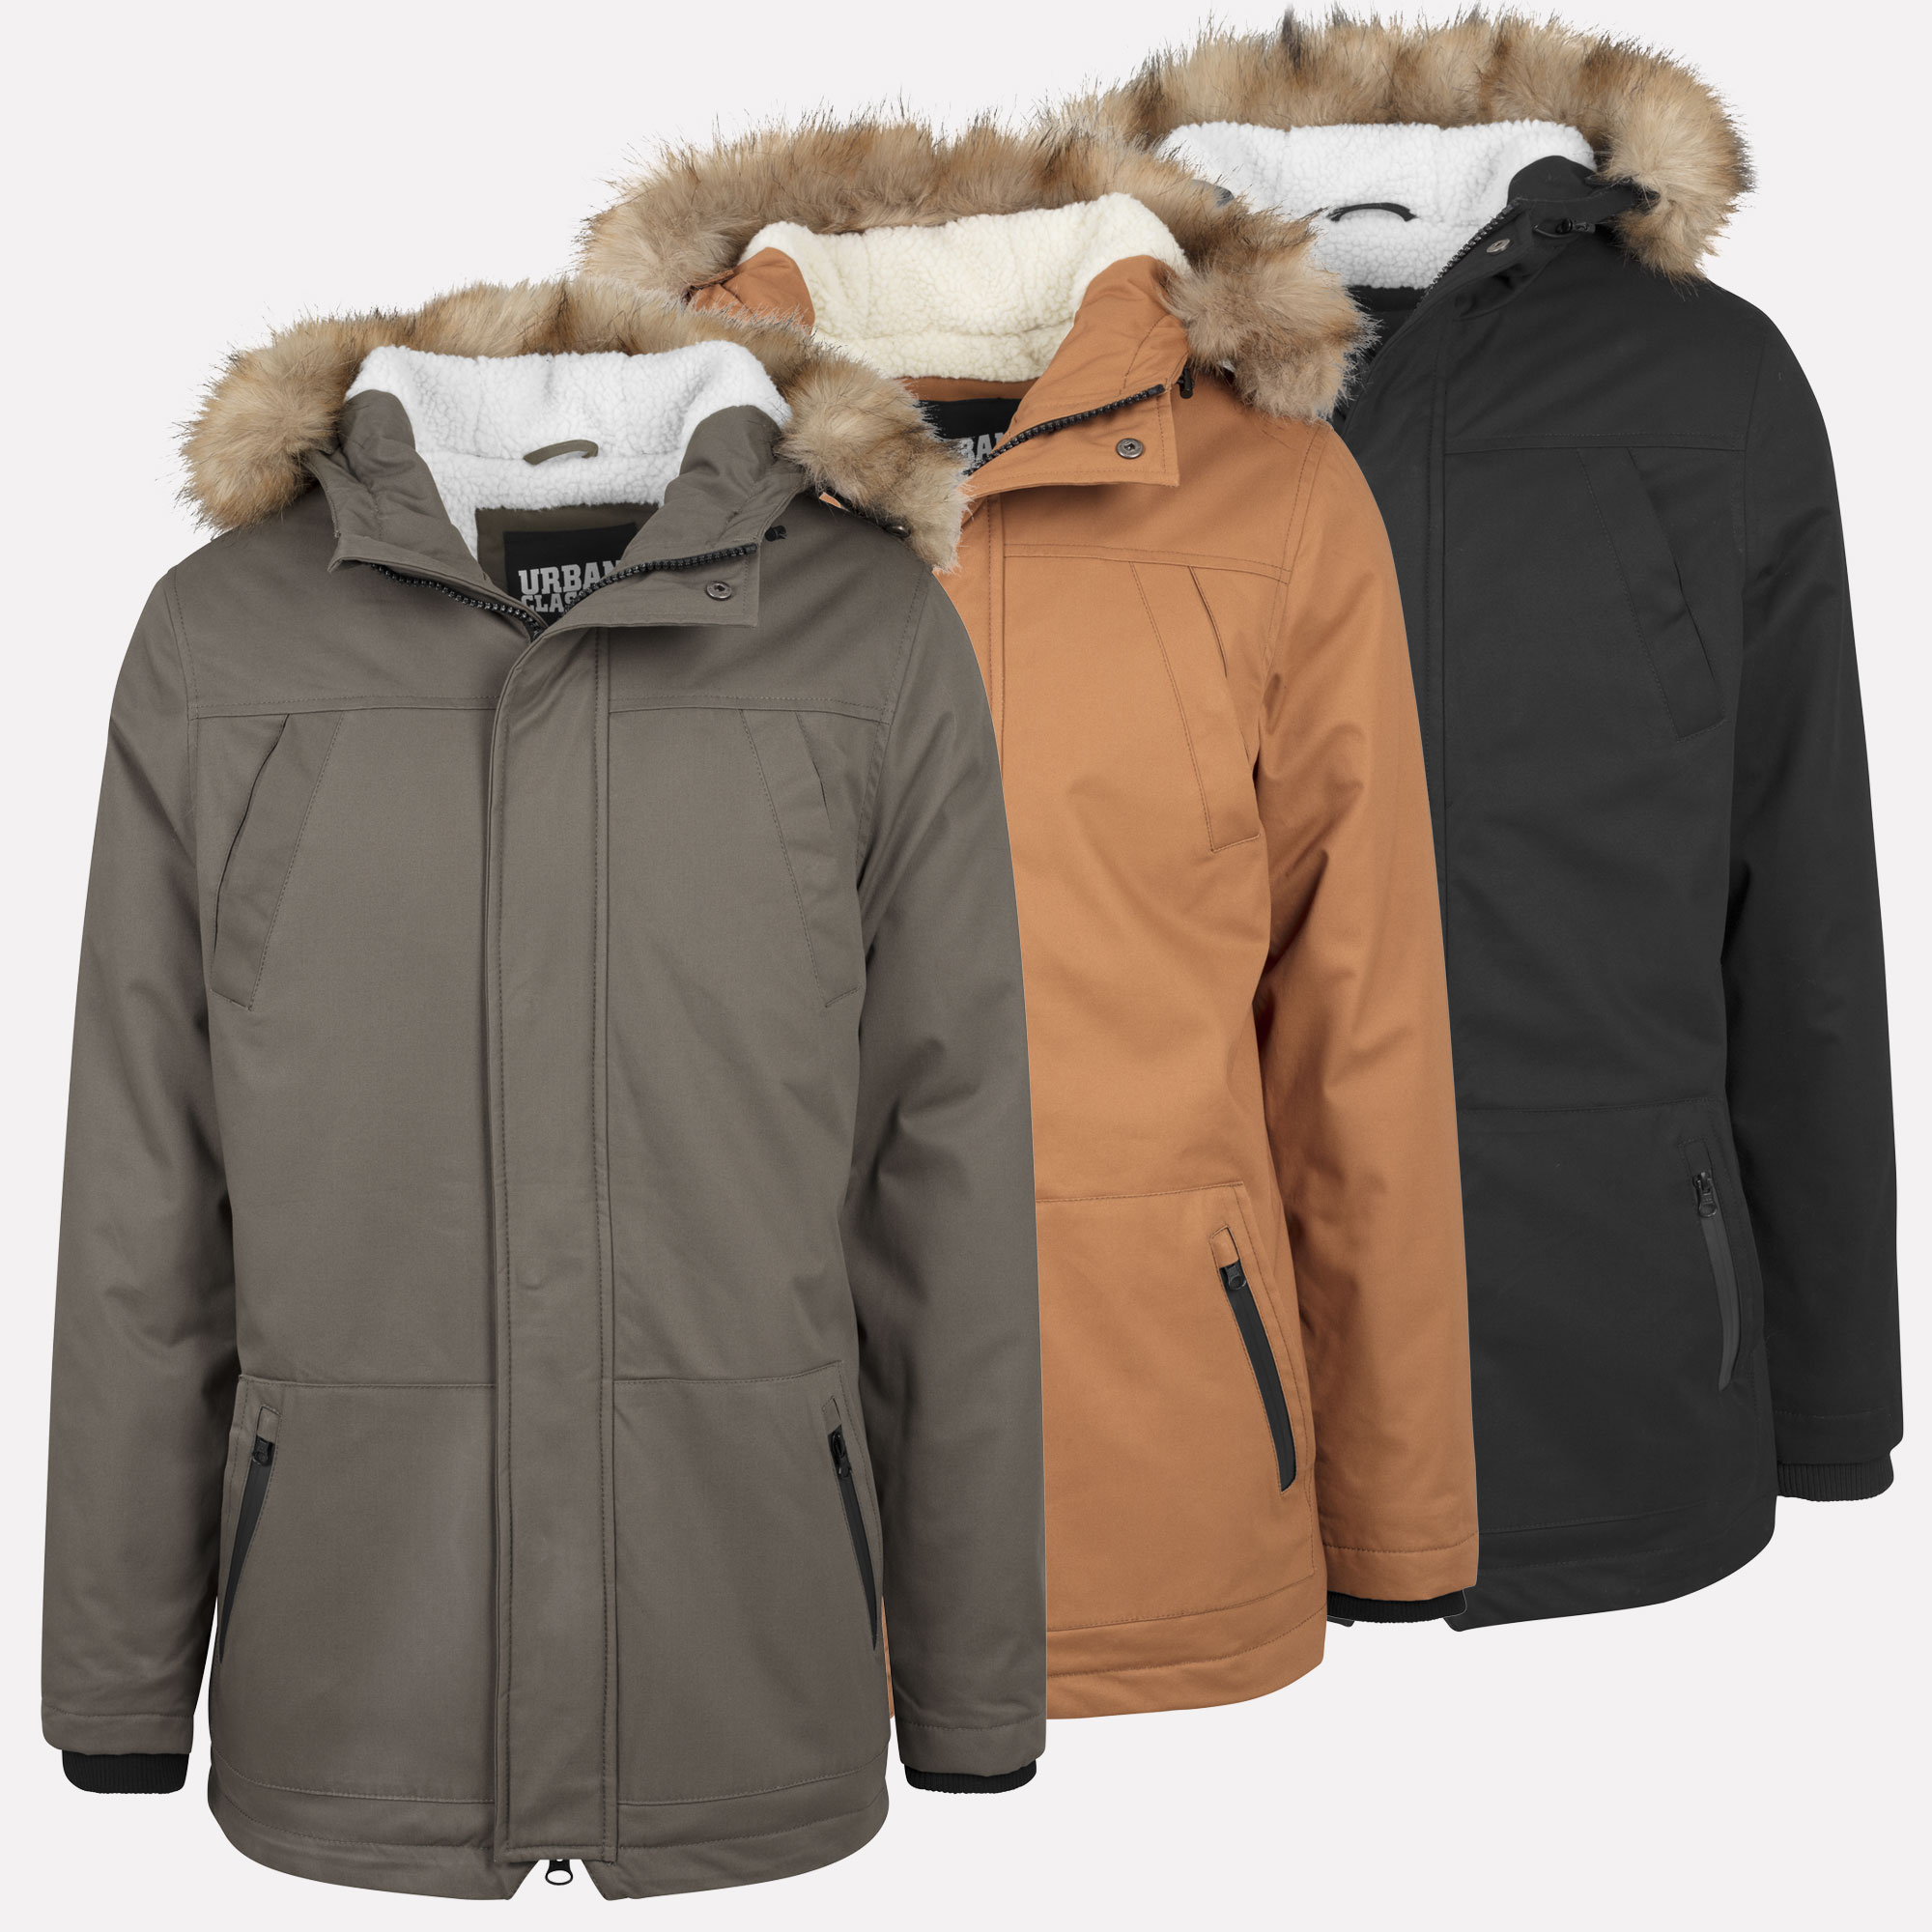 urban classics men 39 s heavy cotton parka jacket fur collar coat s xxl ebay. Black Bedroom Furniture Sets. Home Design Ideas